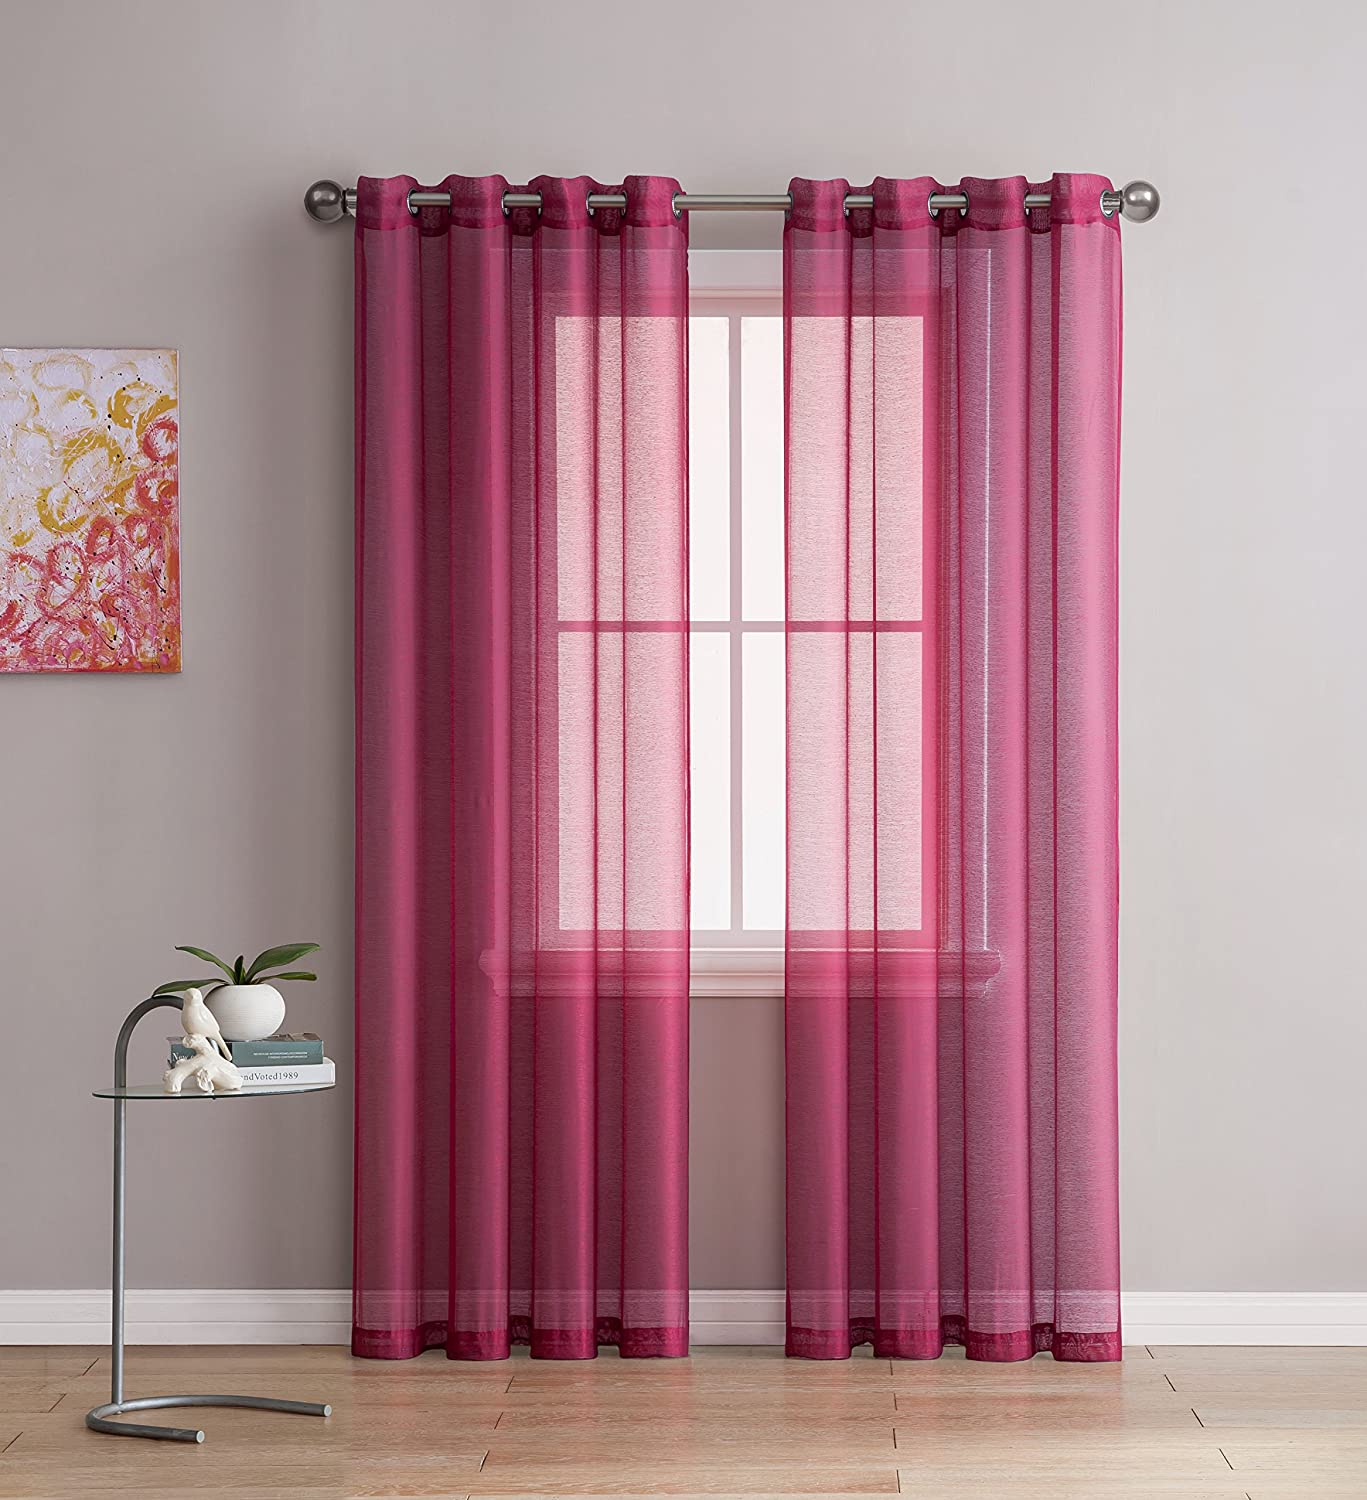 Amazon.com: Grommet Semi Sheer Curtains   2 Pieces   Total Size 108 Inch  Wide (54 Inch Each Panel)   84 Inch Long   Panel Beautiful, Elegant,  Natural Light ...